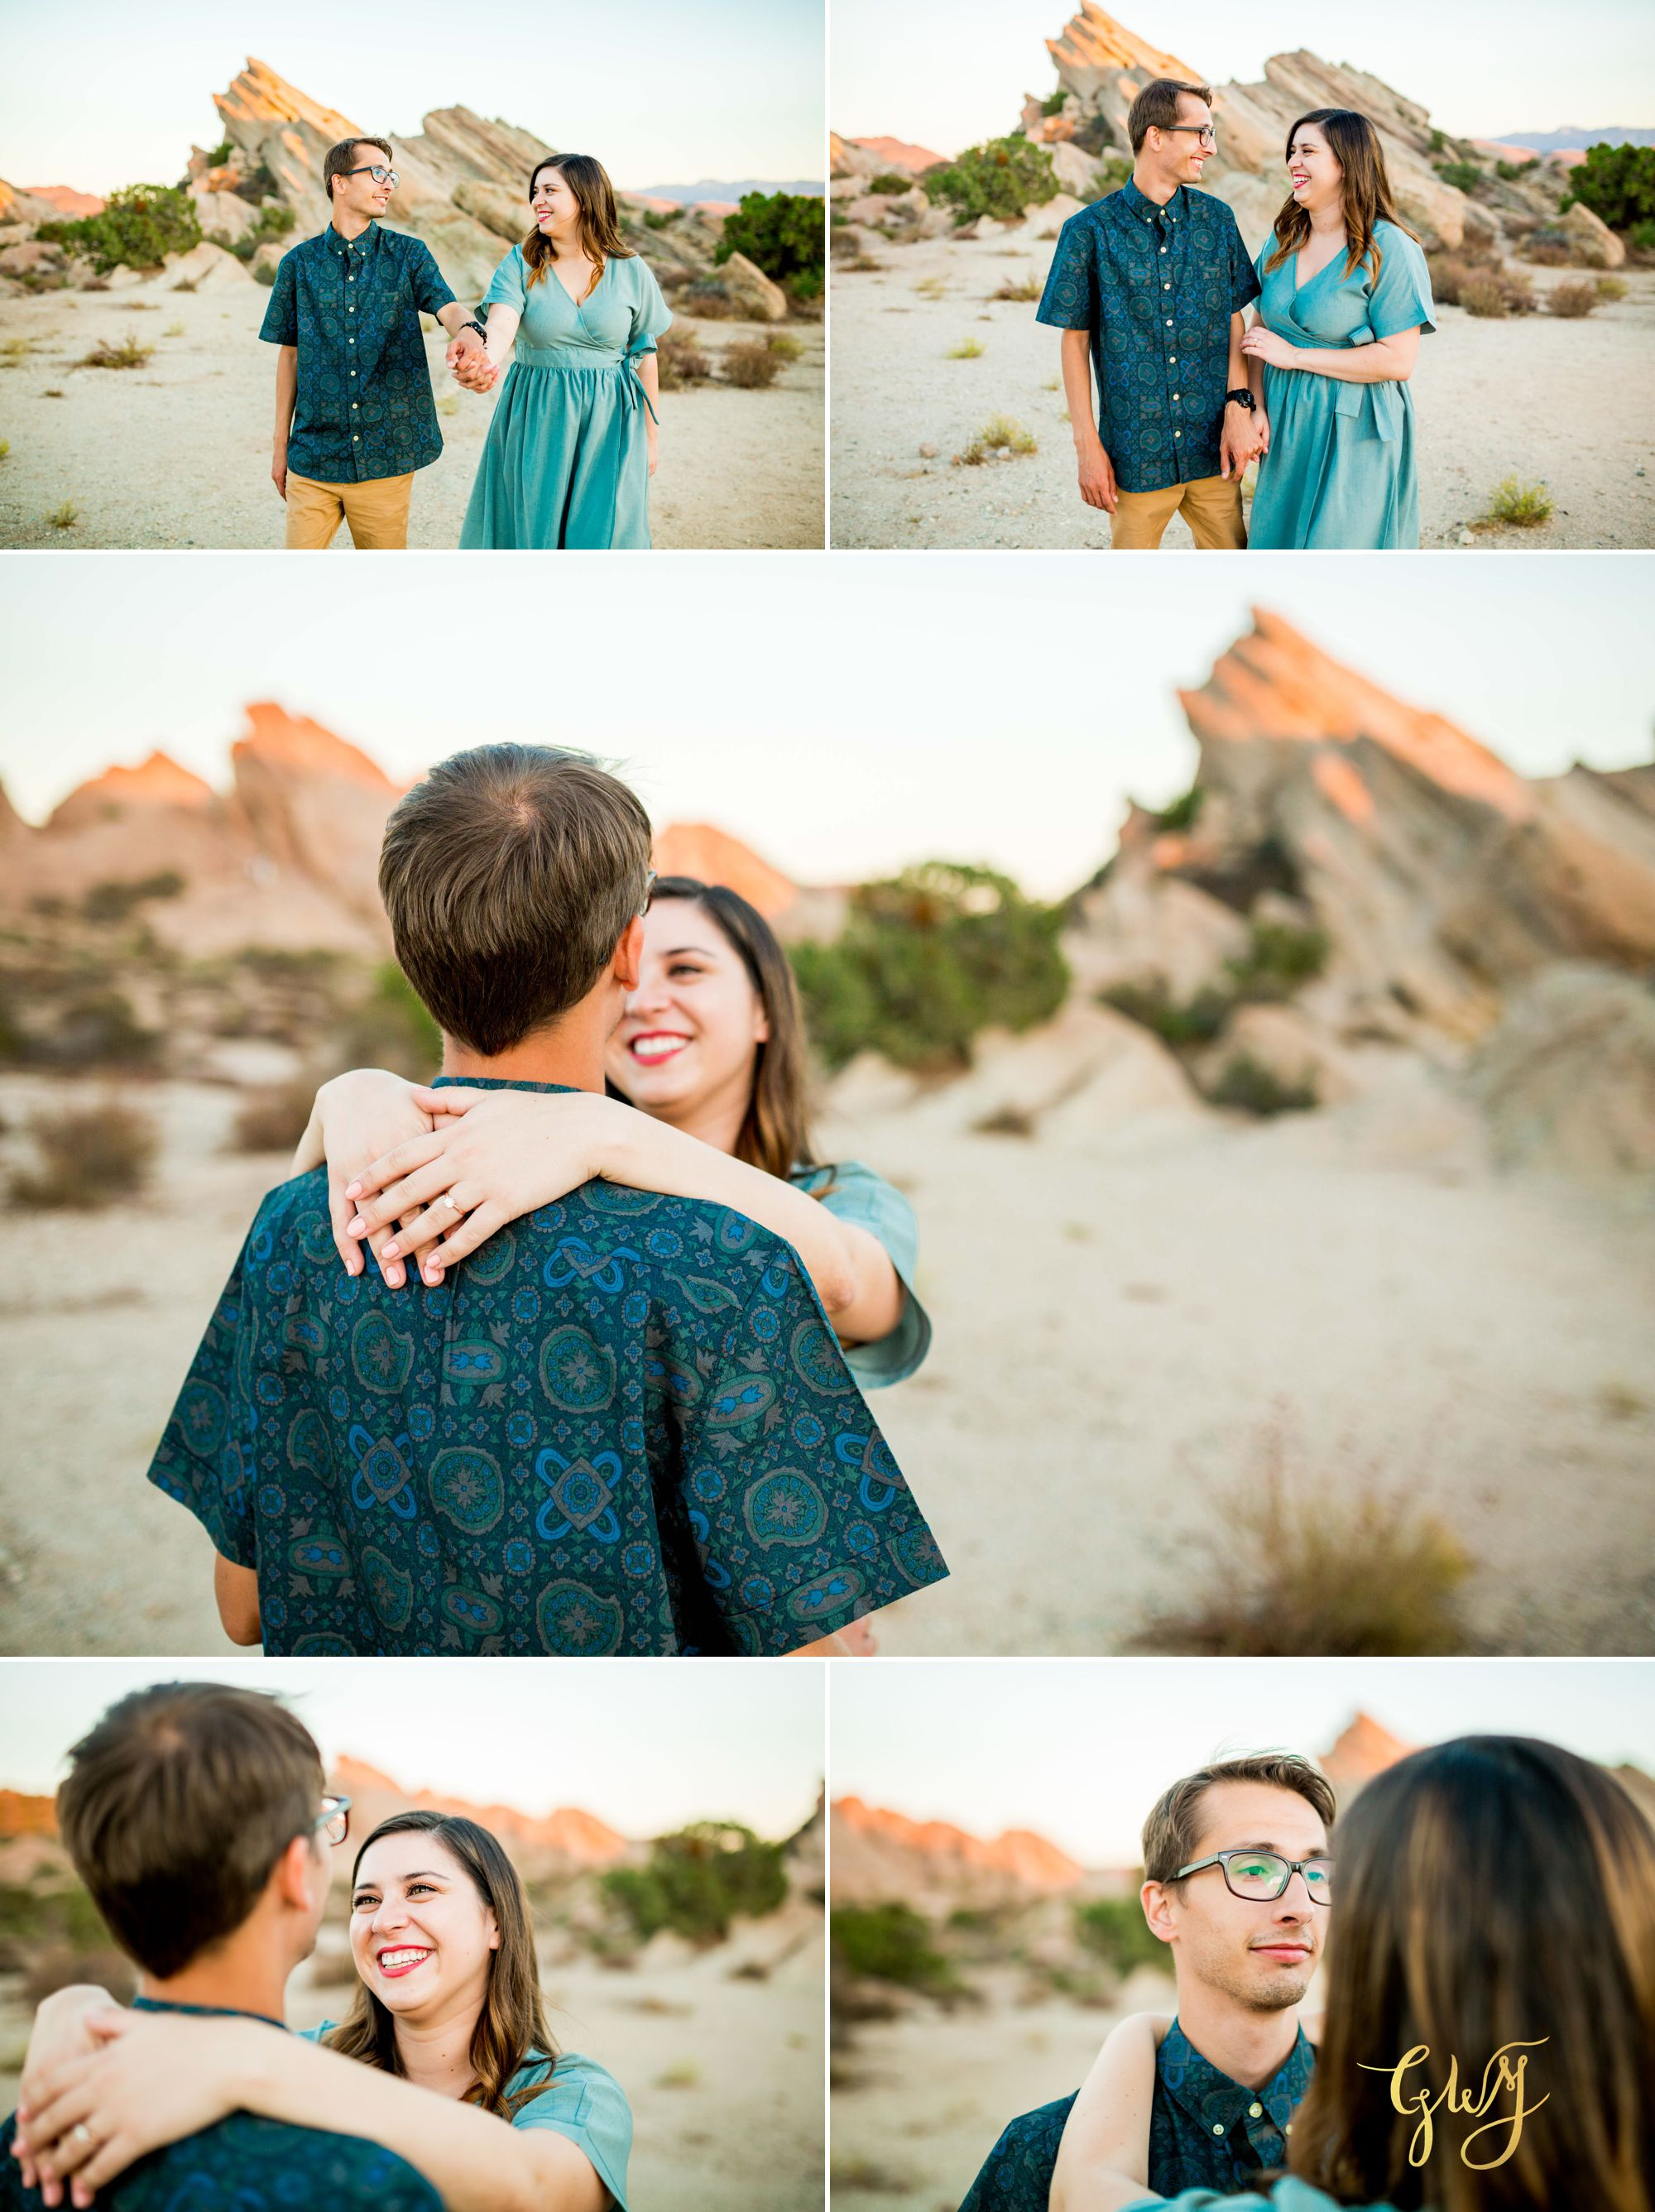 KJ + Maddie Vasquez Rocks Adventurous Hiking Outdoors Engagement Session by Glass Woods Media 11.jpg